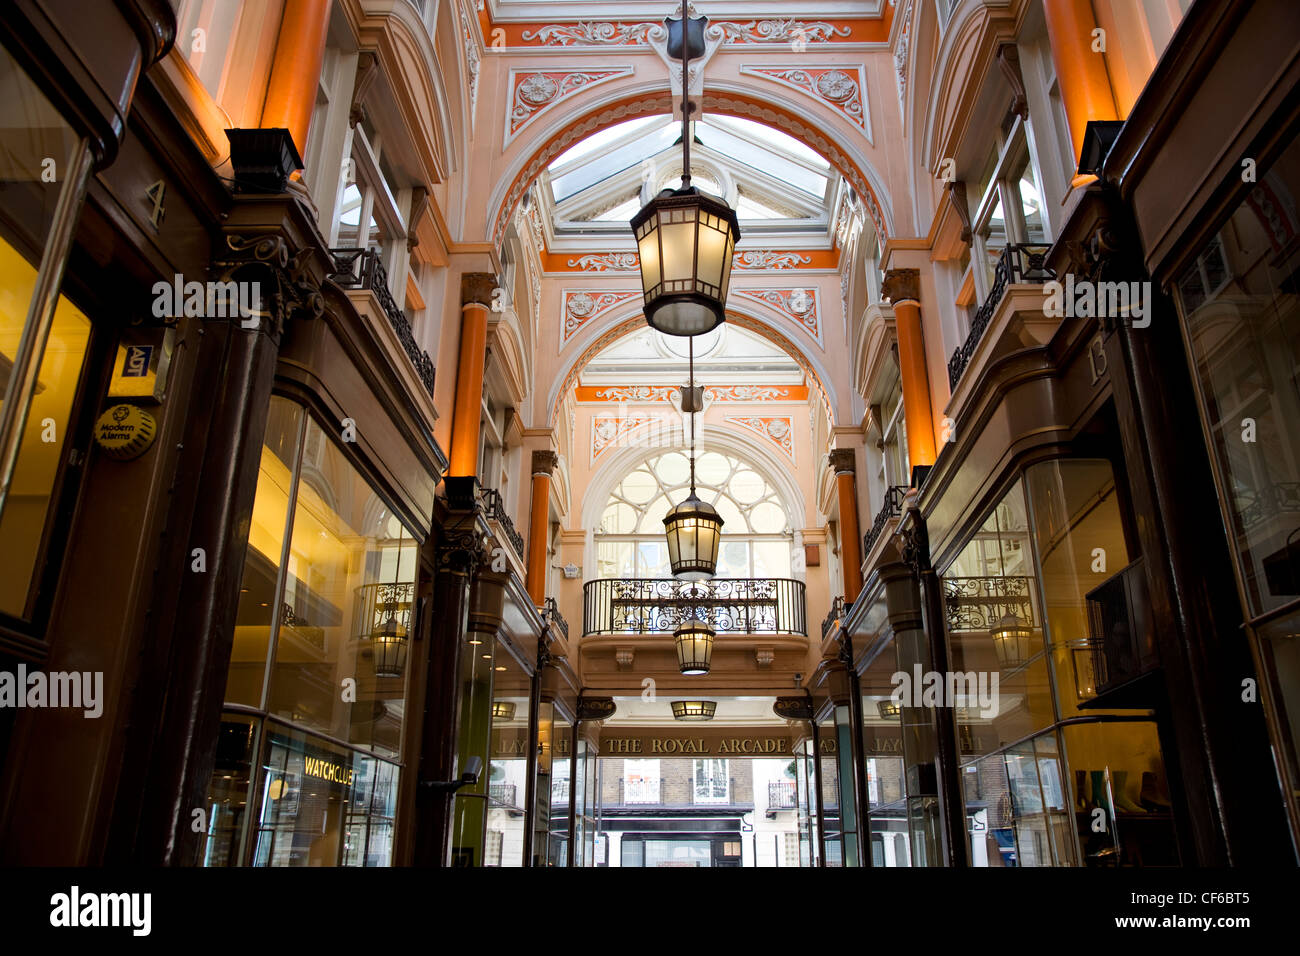 The elegant interior of the Royal Arcade shopping centre in Old Bond Street. - Stock Image